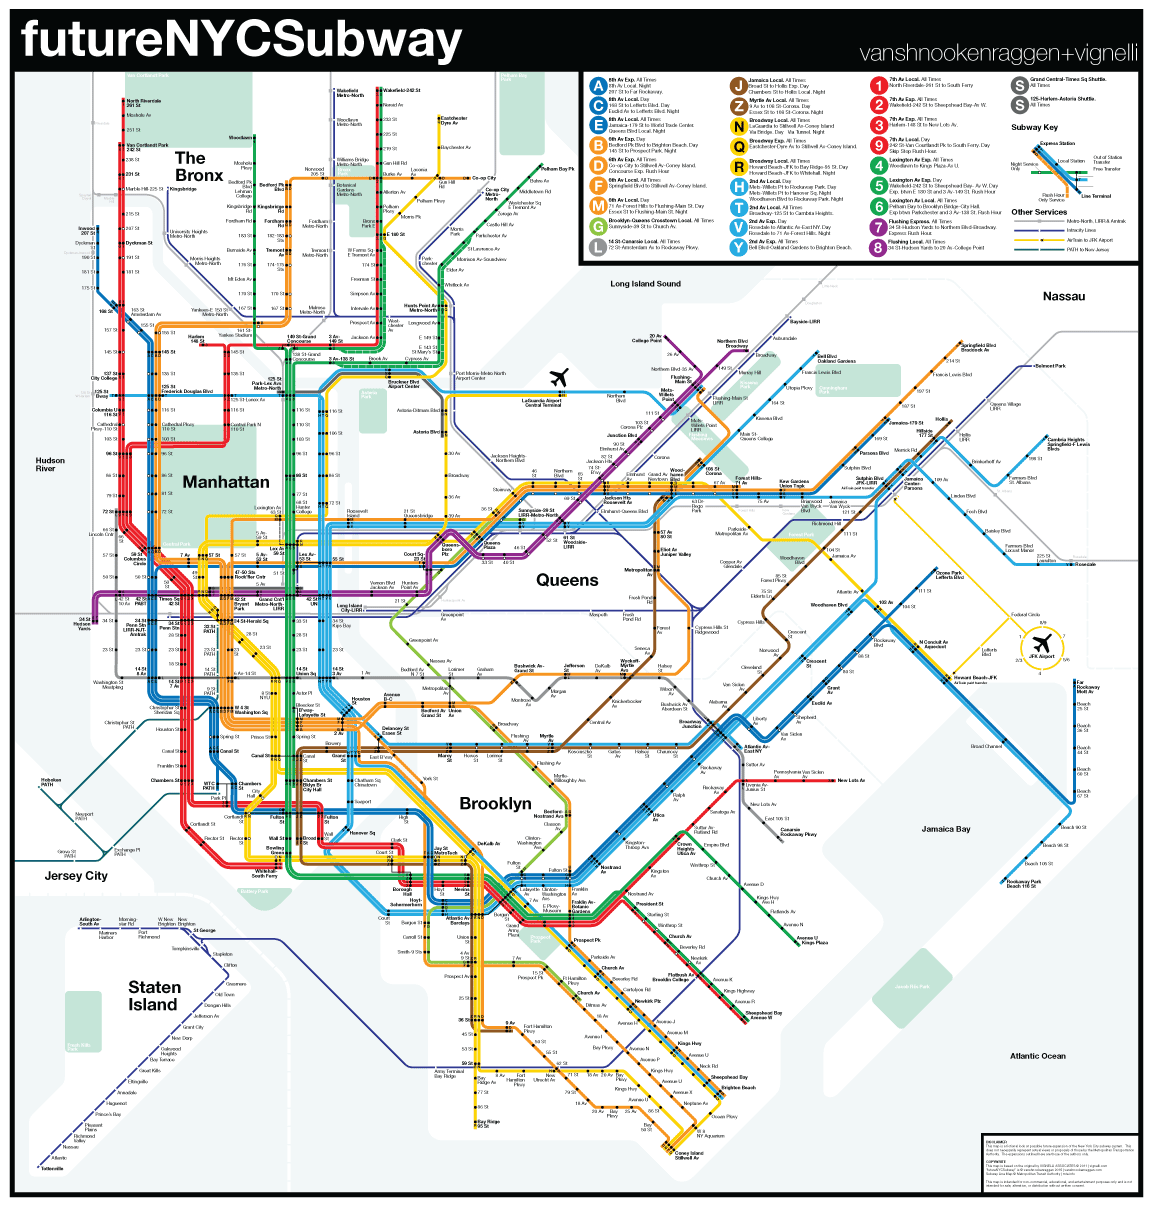 Large Ny Subway Map.Futurenycsubway V4 Vanshnookenraggen